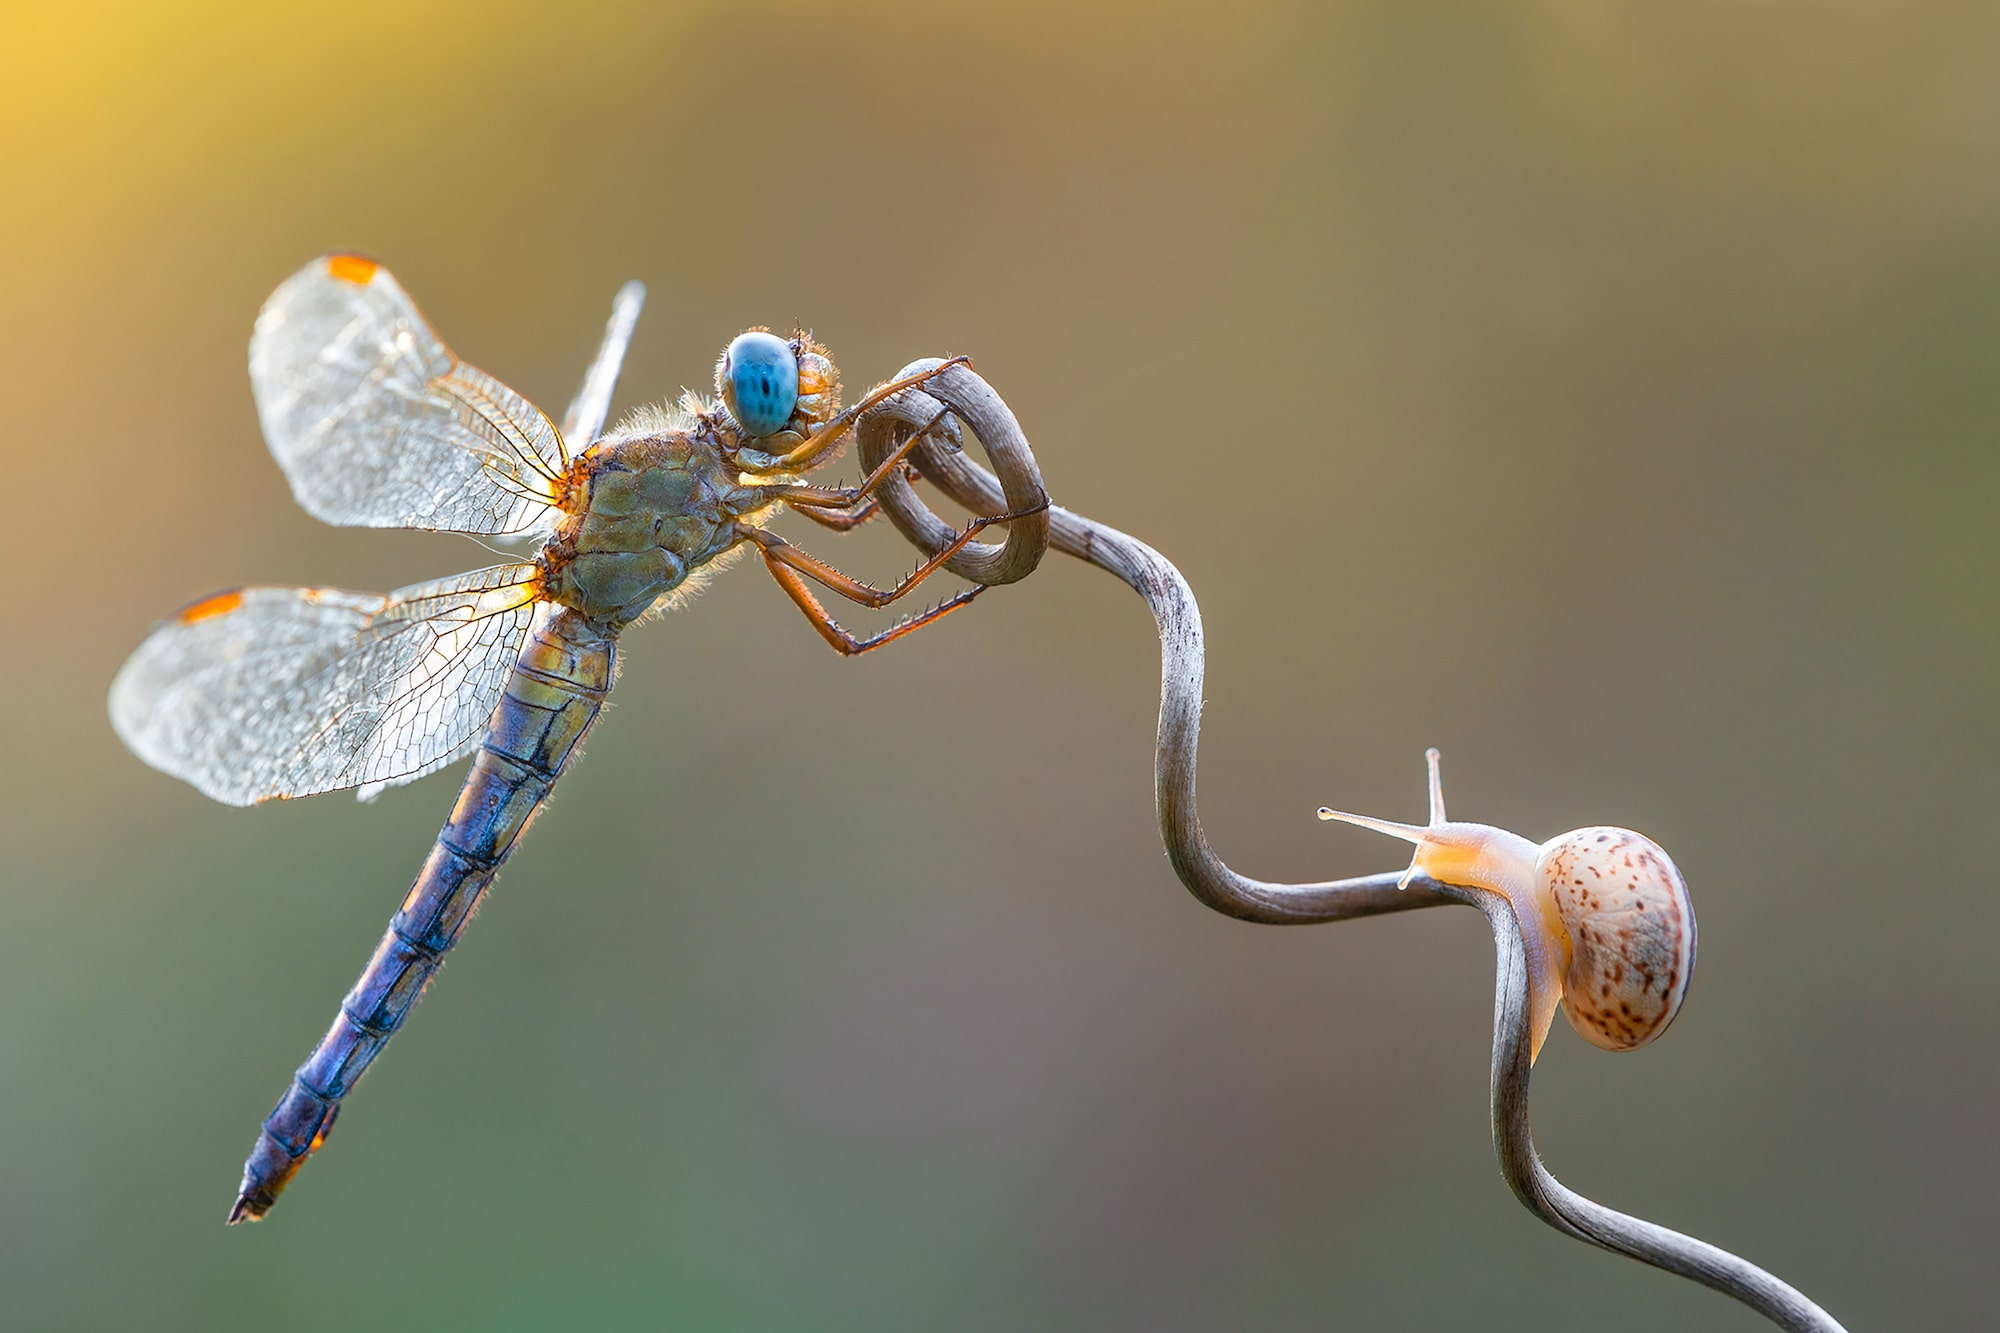 petar sabol sony alpha 7RIII dragonfly and snail clinging on to a flower stem